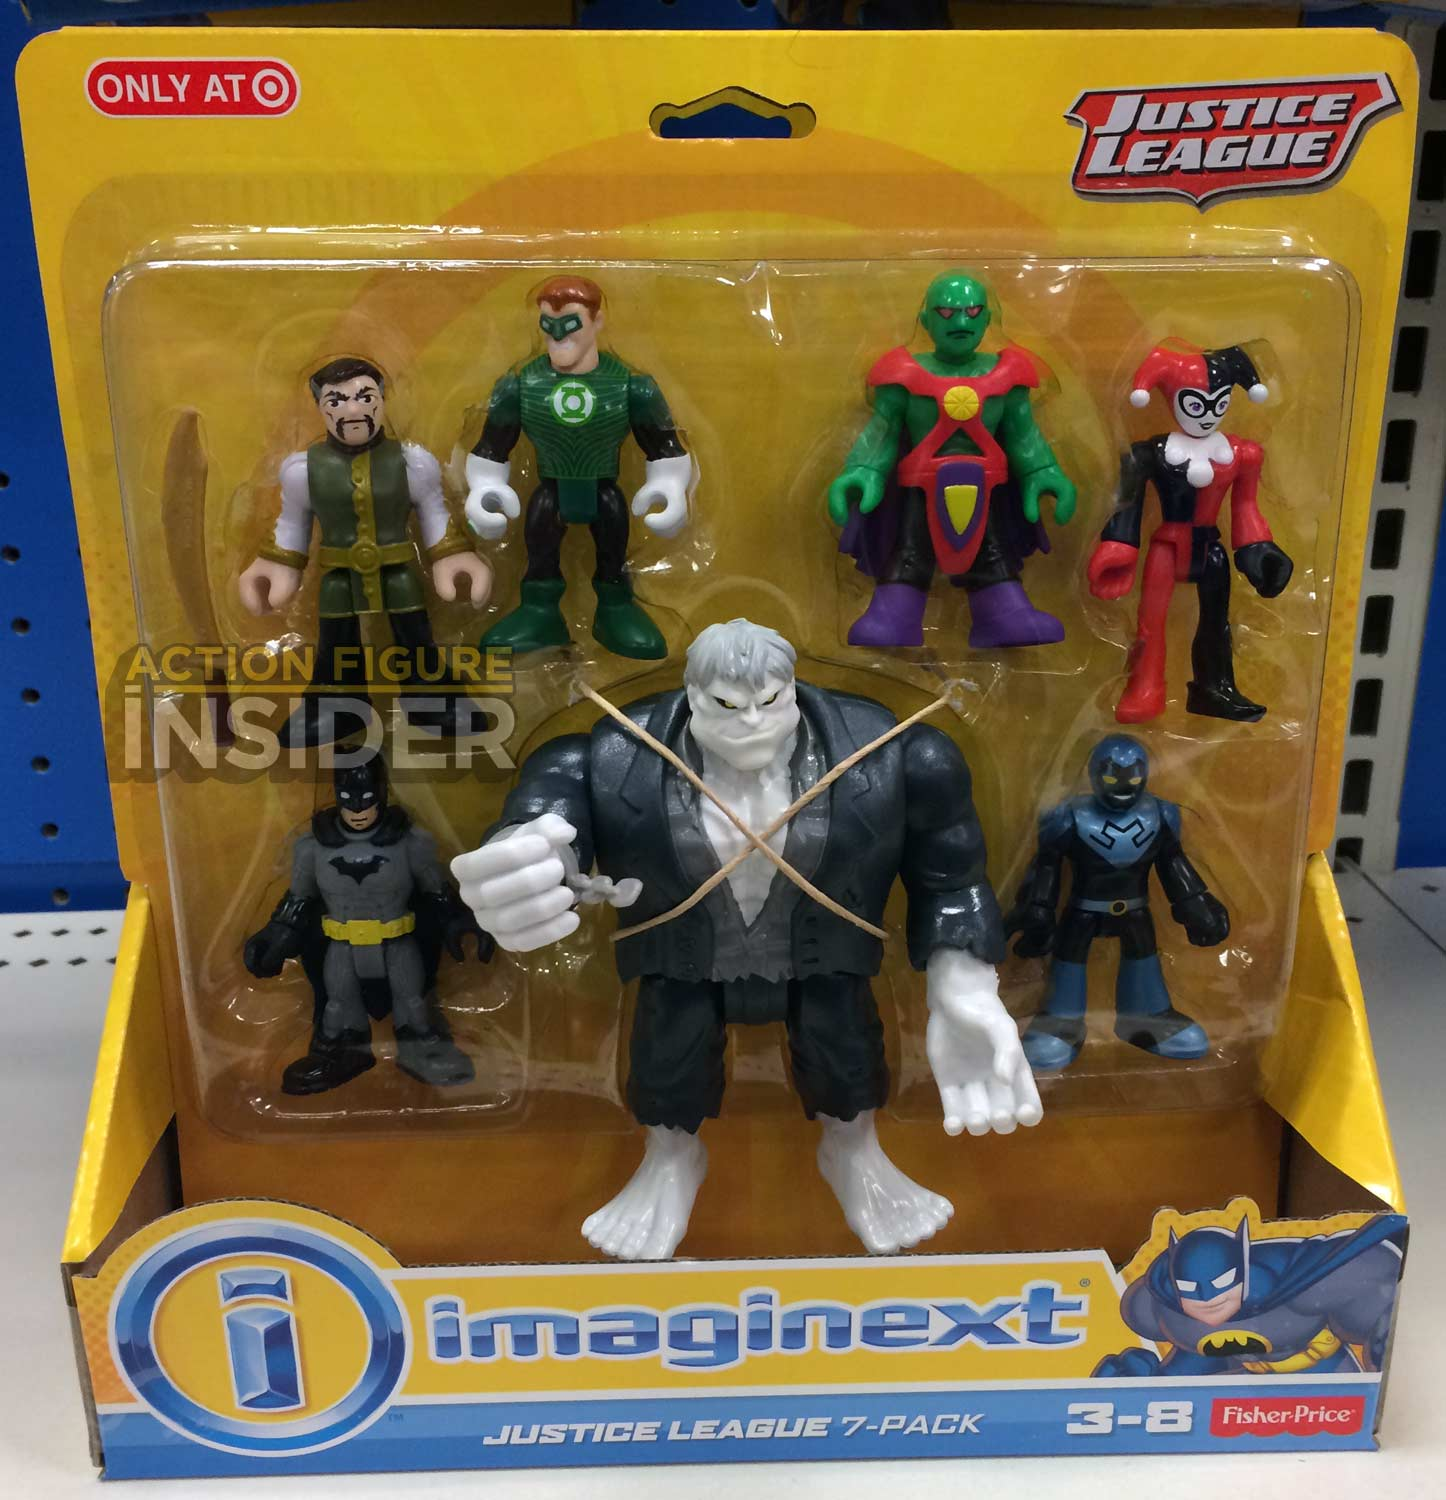 imaginext helicopter batman with New Dc Ics Imaginext Product Revealed At Target on Imaginext DisneyPixar IMonsters UniversityI Scare Factory in addition 22672 besides 34 also Vtech Go Go Smart Wheels Green Race Car besides Lego Dc Universe Super Heroes The Bat Vs Bane Tumbler Chase 76001 Revealed.